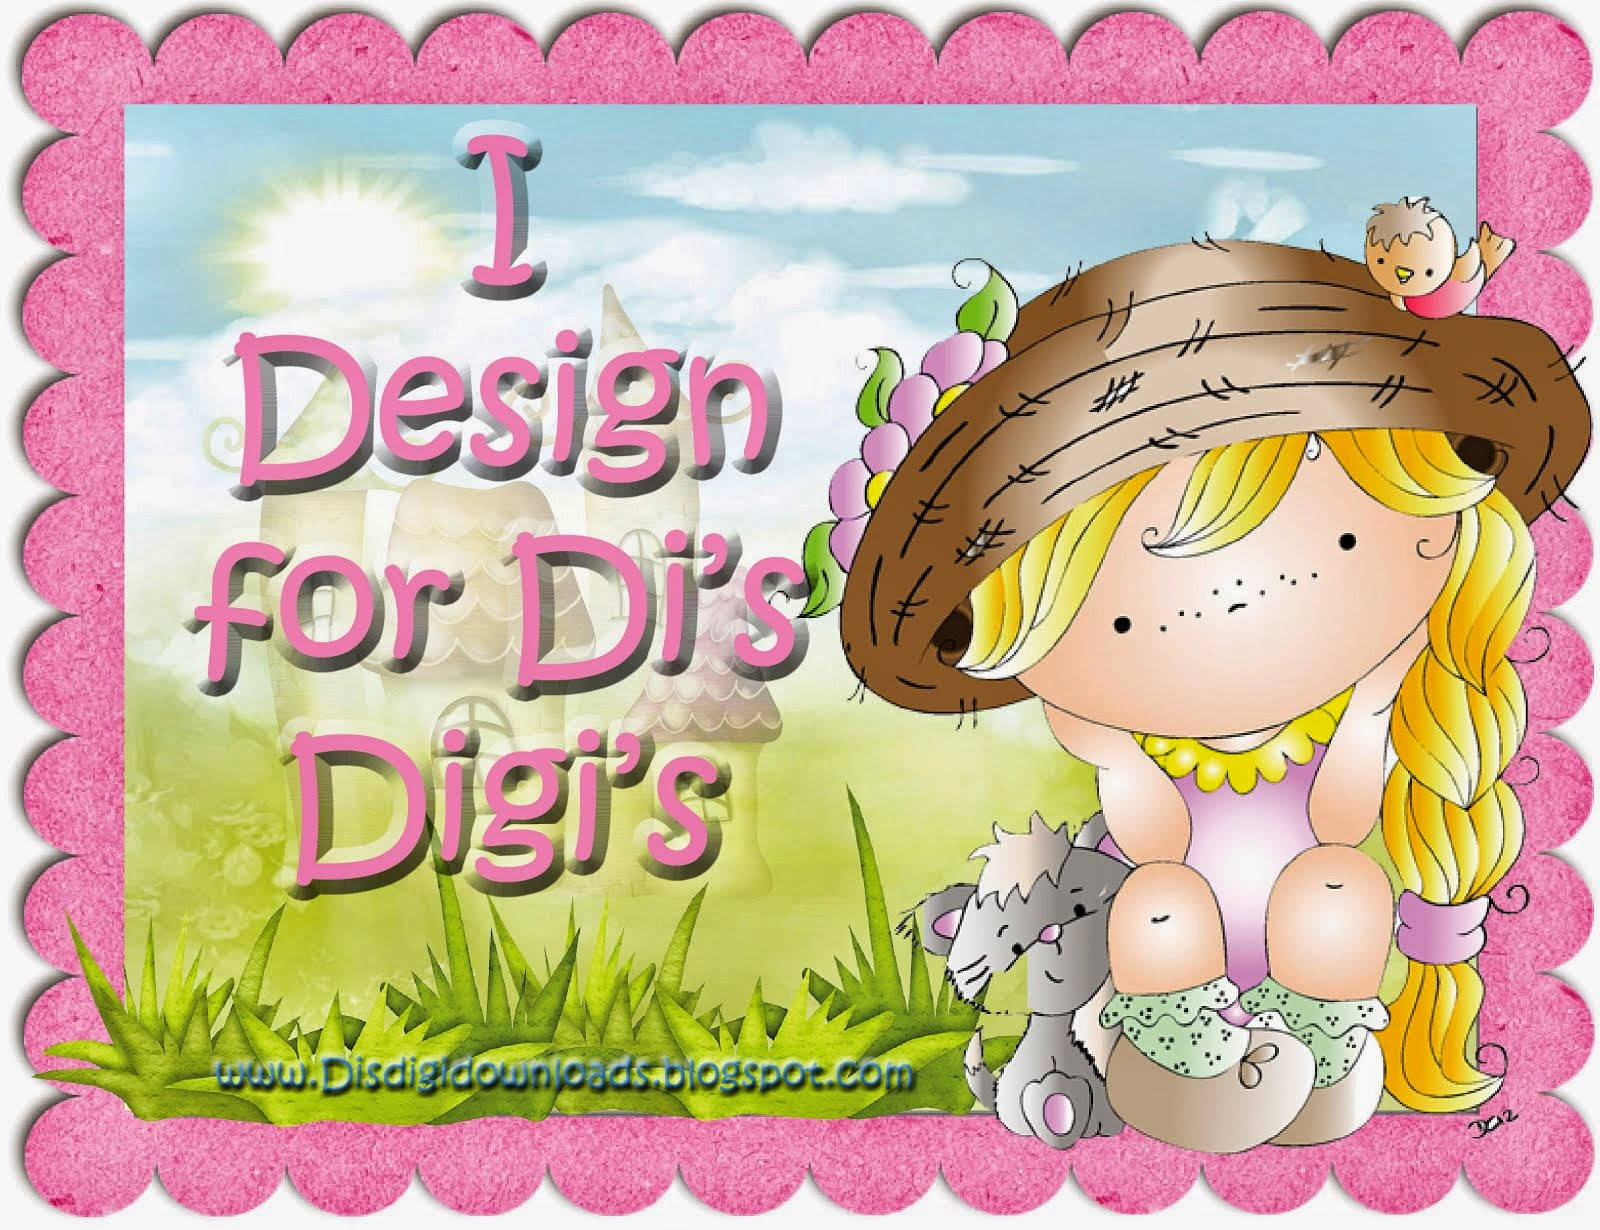 Di's Digital Stamps DT